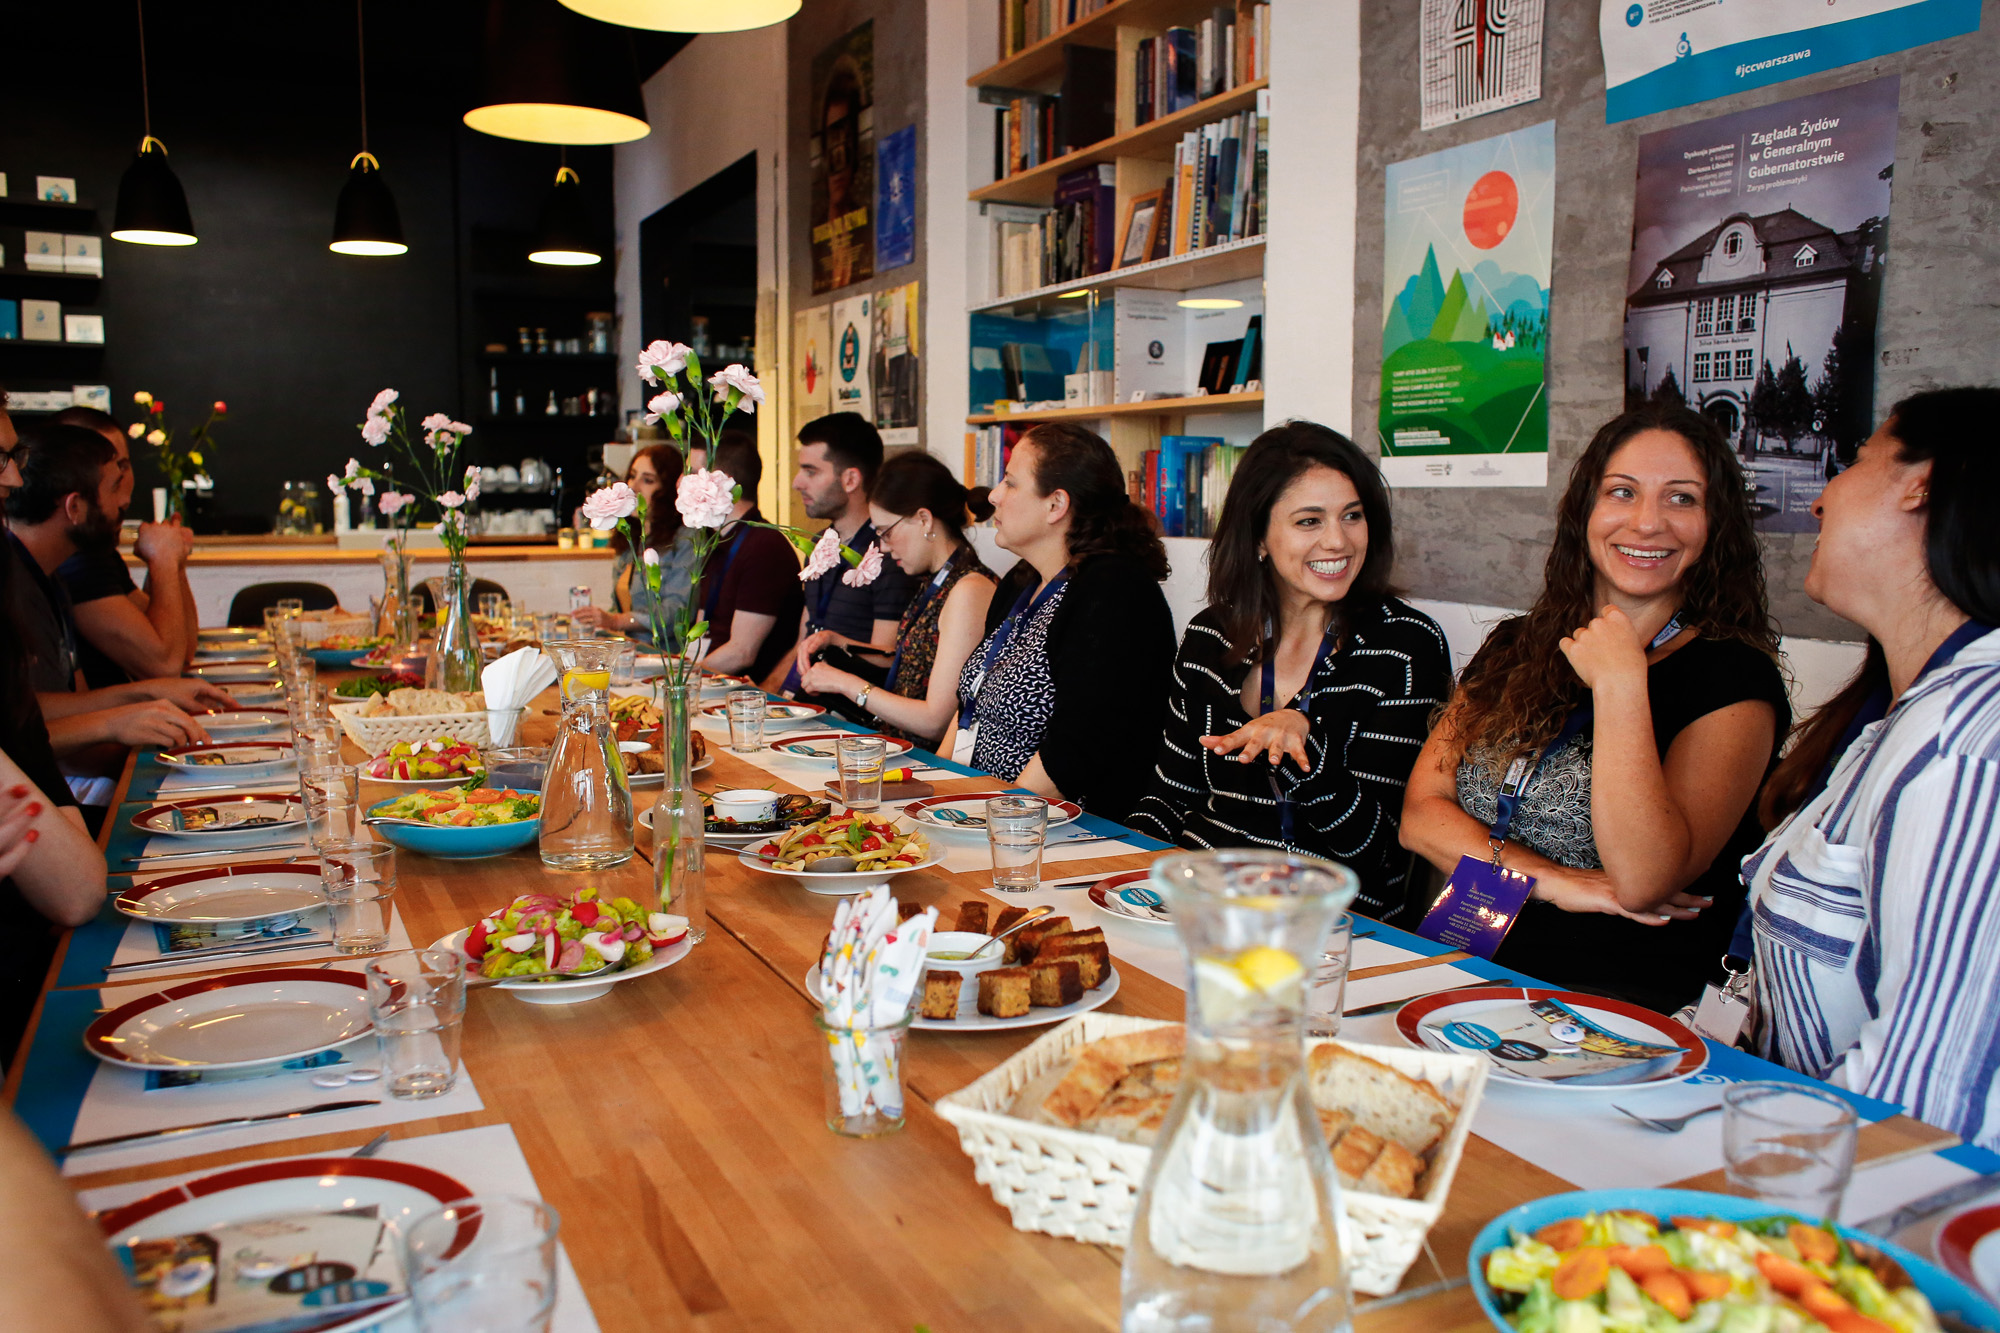 Participants on the YAD trip to Poland dine at the Warsaw JCC. (Photo/Oleska Gro)